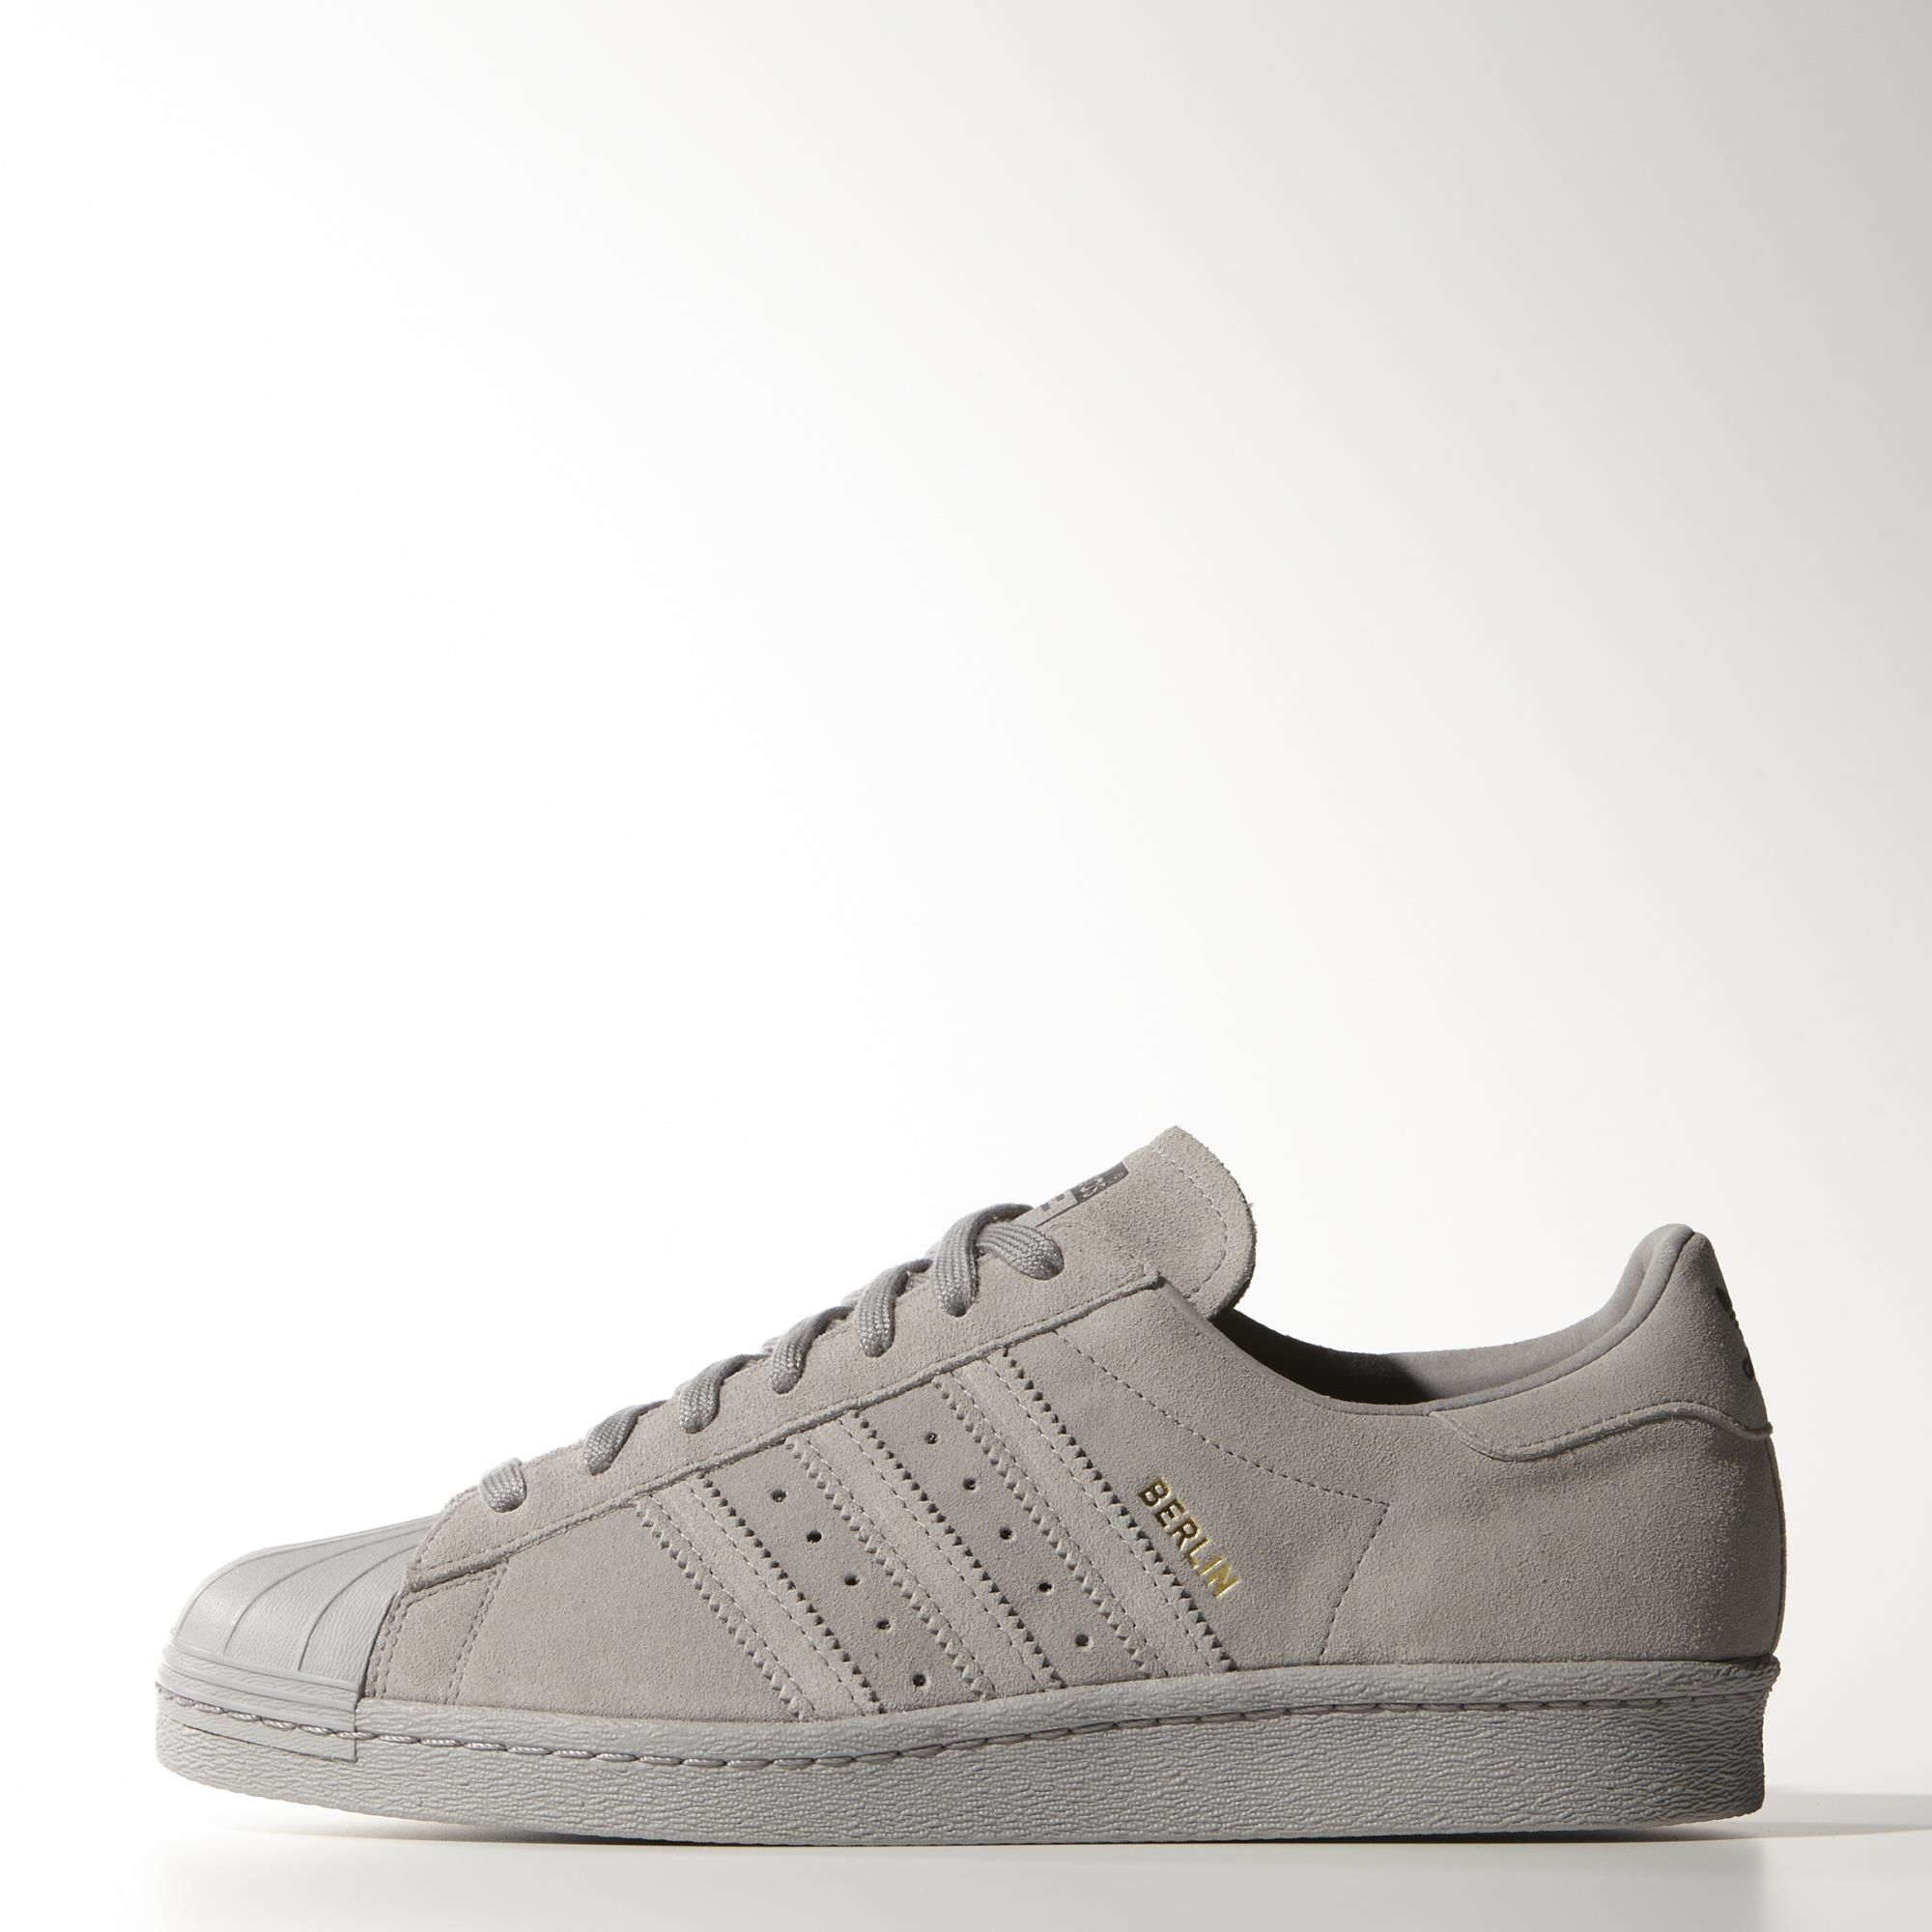 Adidas Superstar Grey Suede flagstandards.co.uk